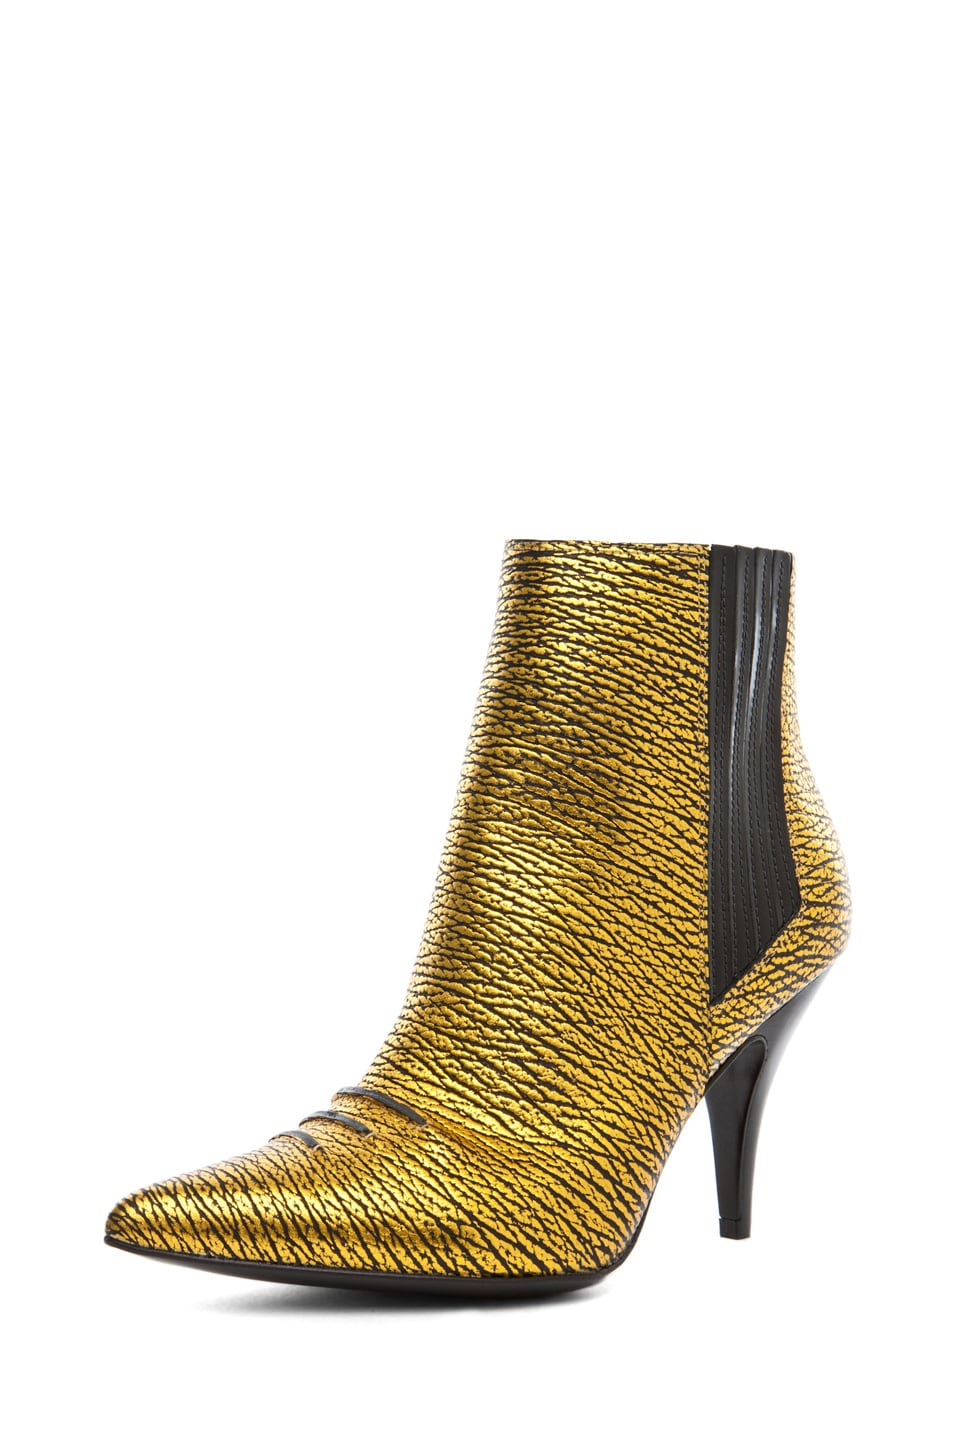 Image 2 of 3.1 phillip lim Delia Bootie in Yellow Gold